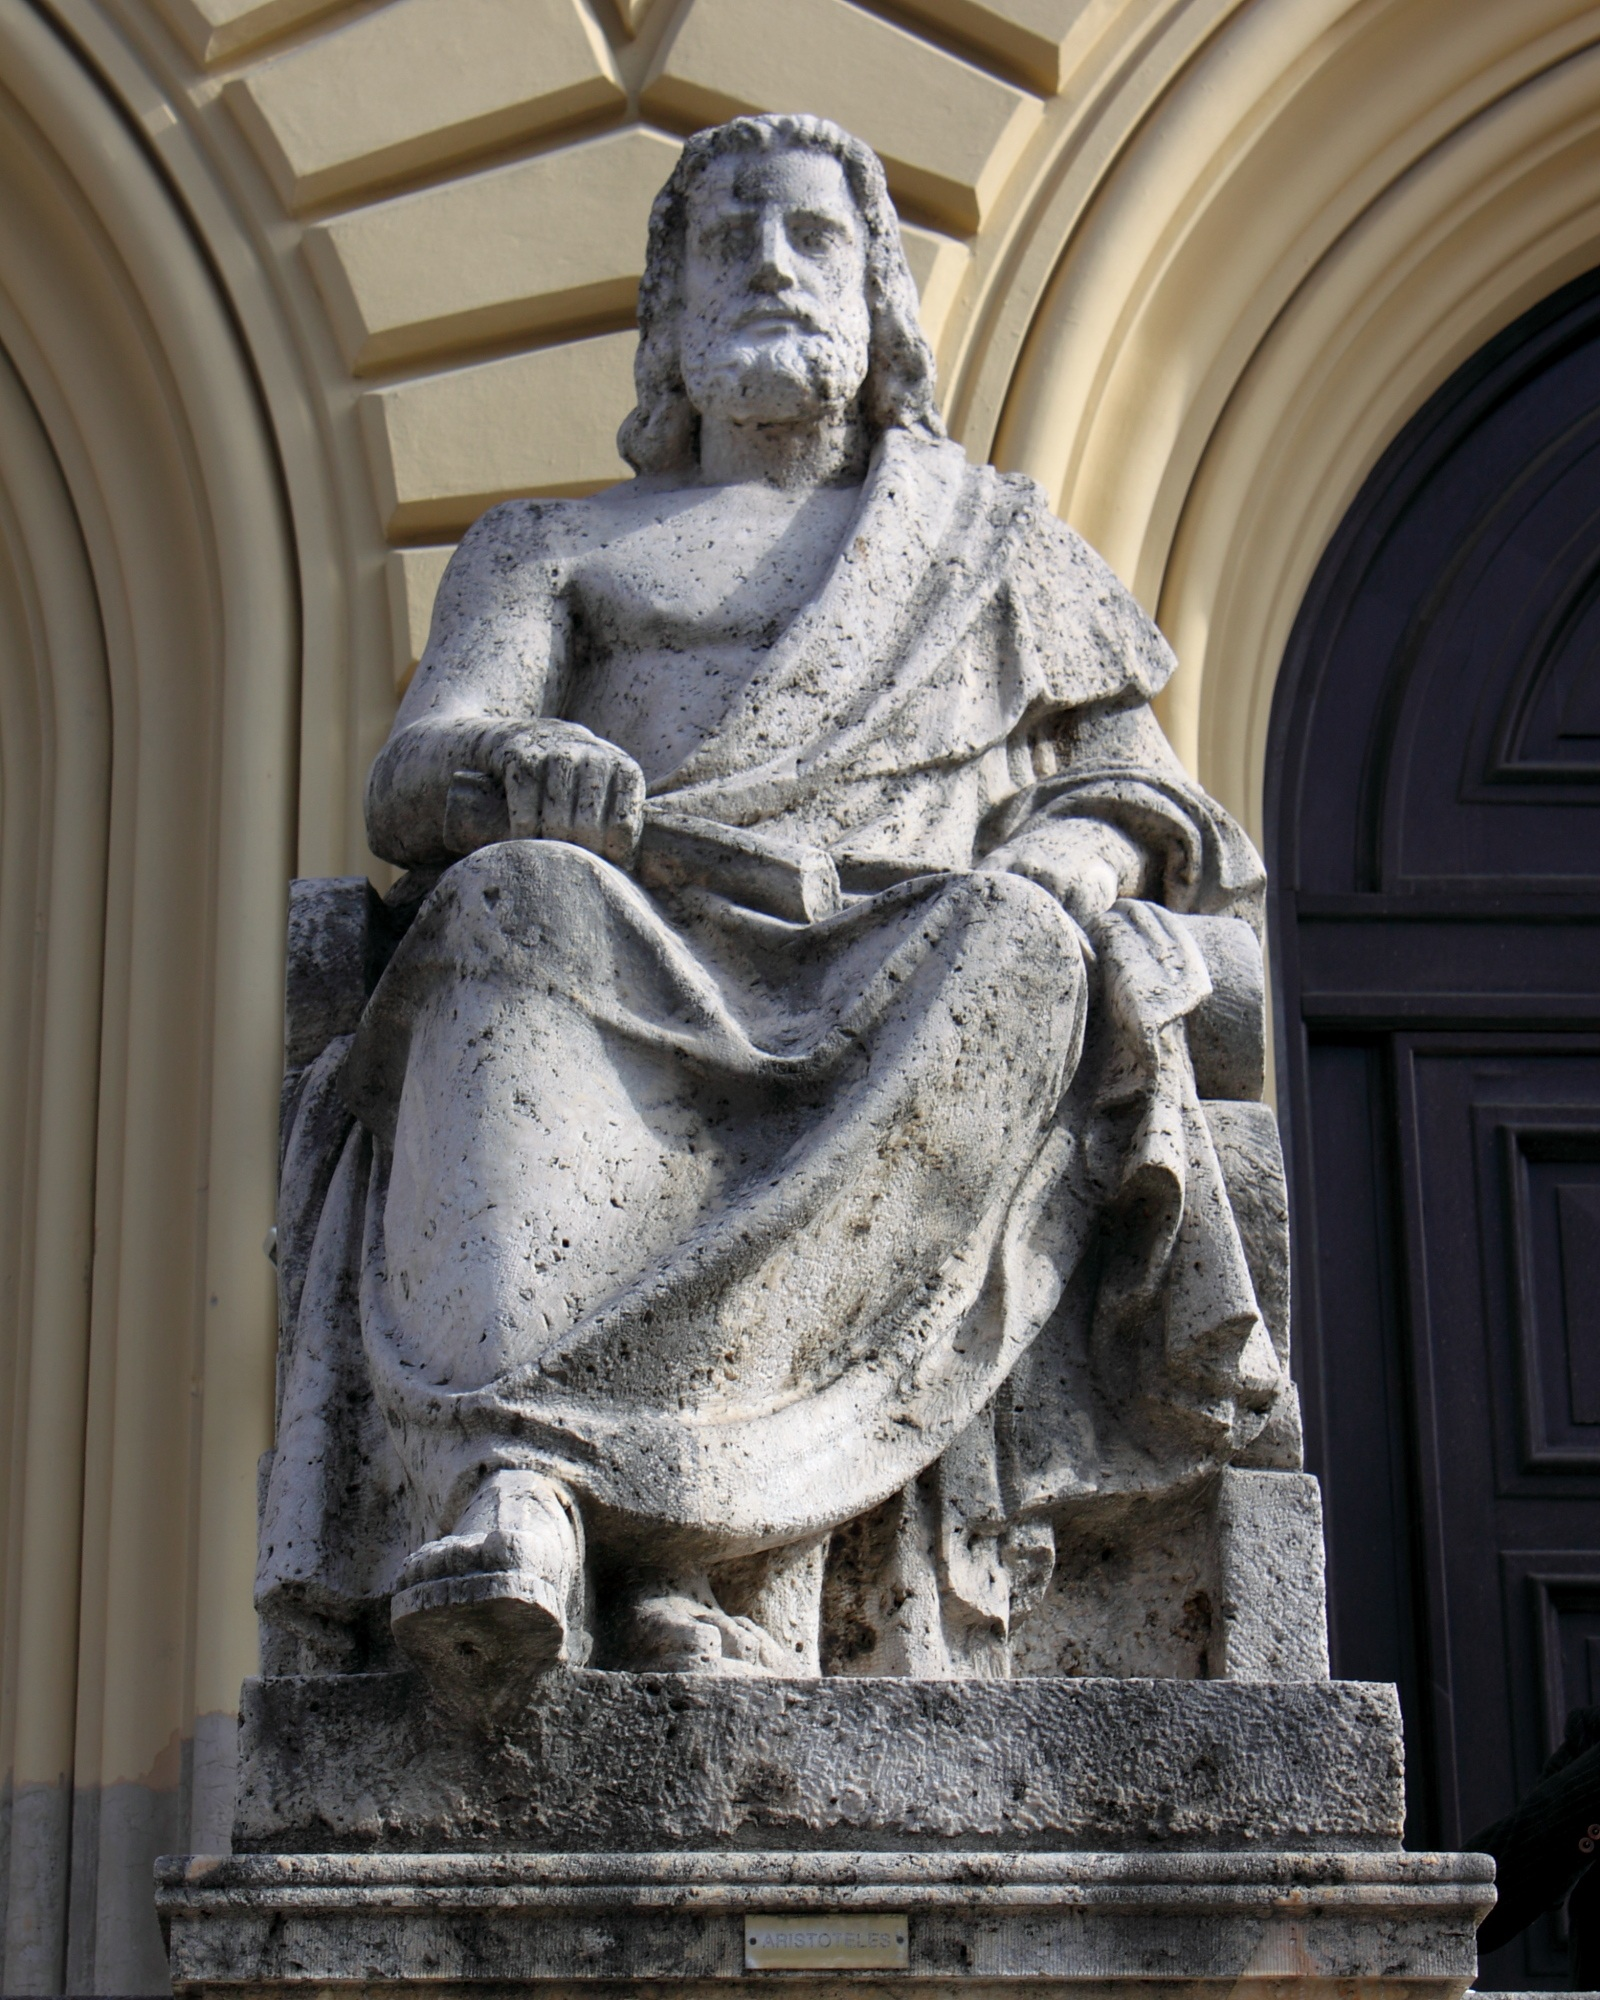 Aristotle, Aristotle was a bugger for the bottle. Statue at the entrance of the Bayerische Staatsbibliothek